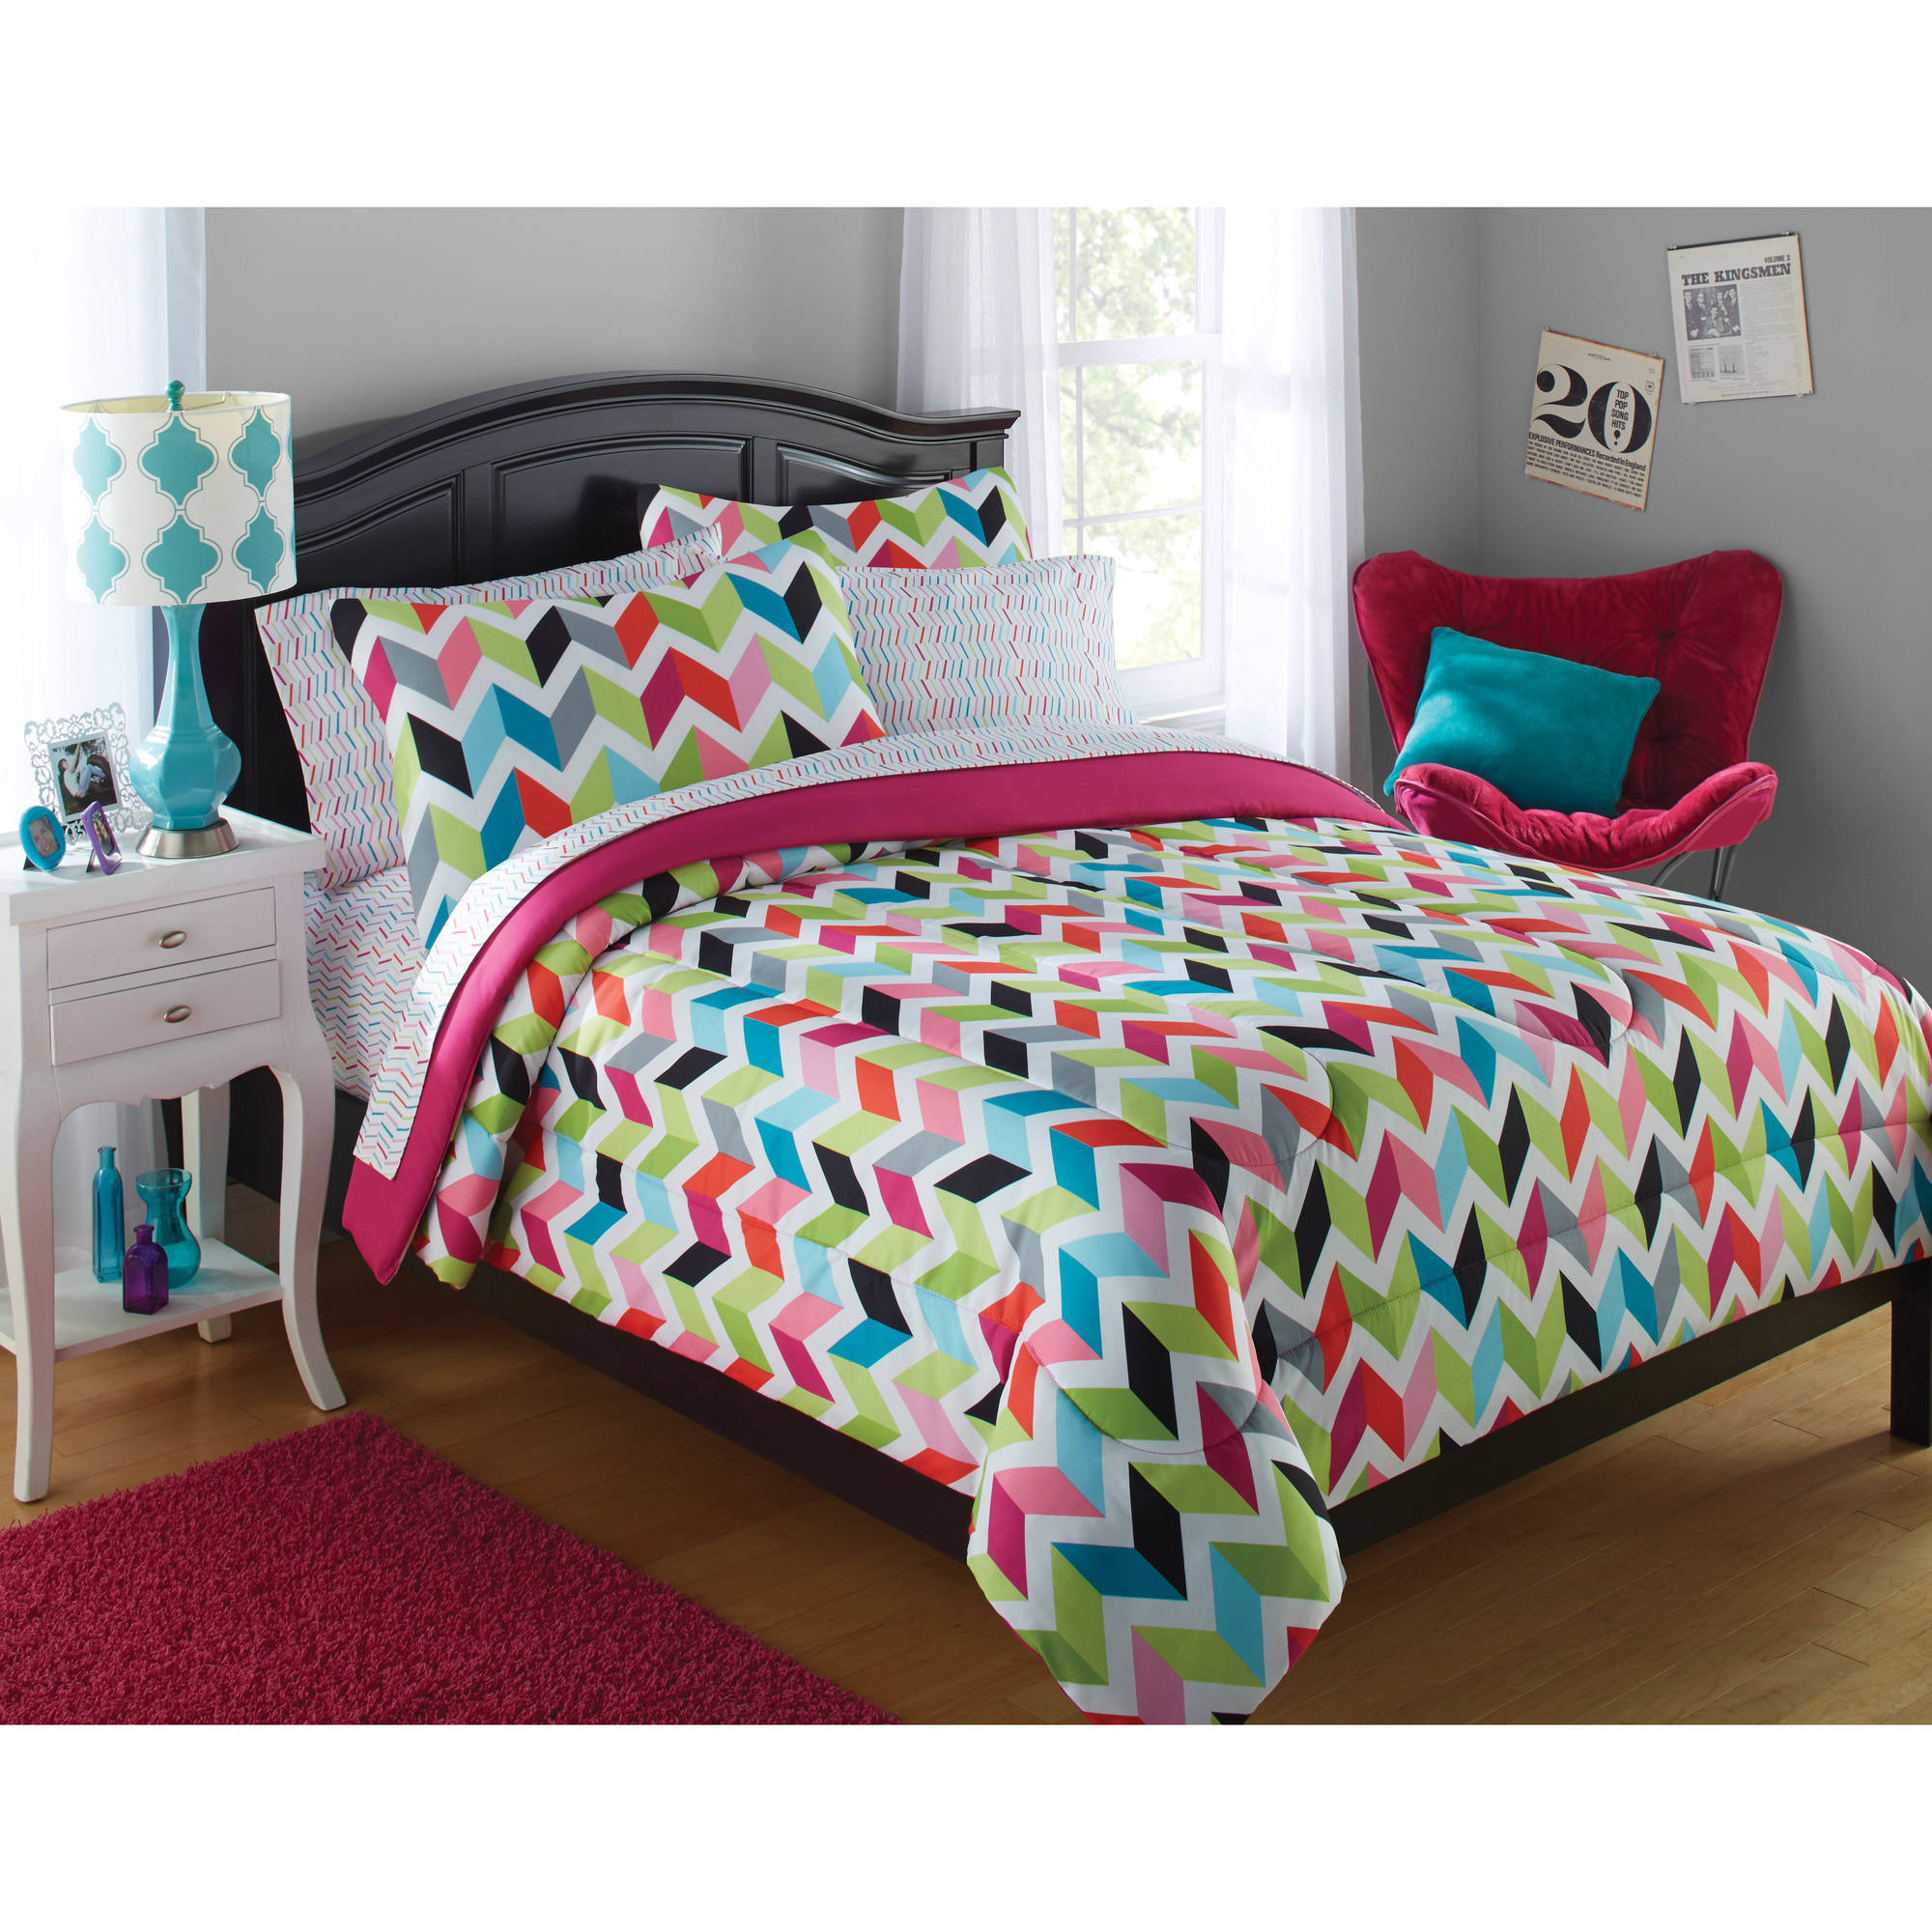 Bed sheets with price - Bed Sheets With Price 18